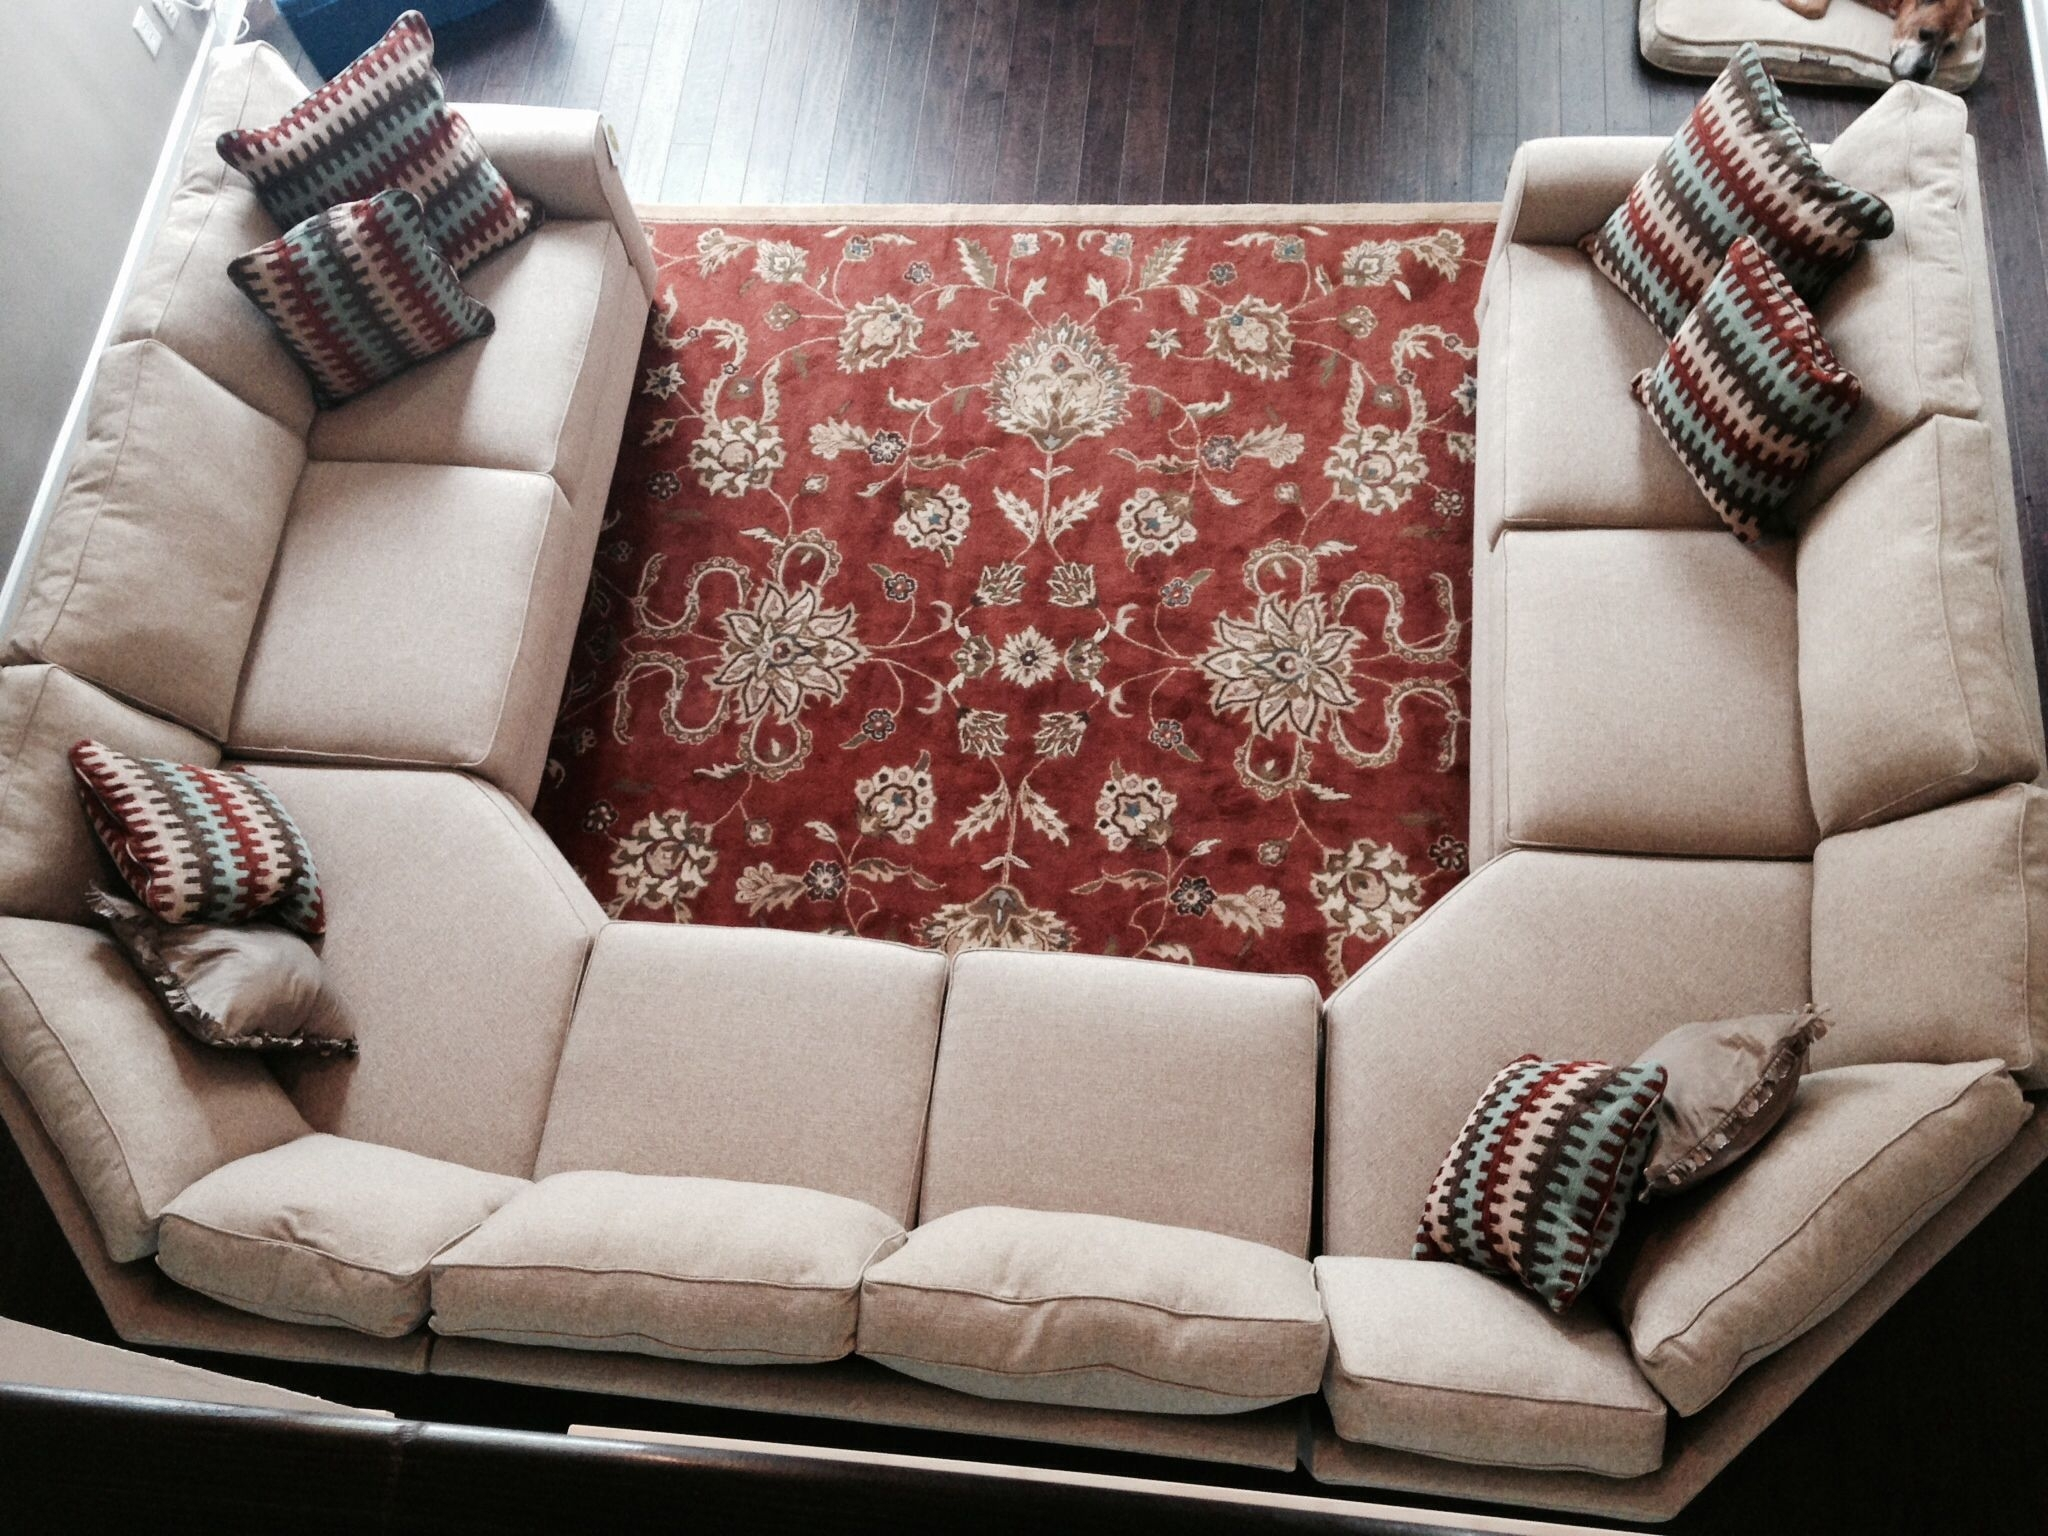 Cool U Shaped Sectional Sofas , Awesome U Shaped Sectional Sofas 44 Pertaining To U Shaped Sectionals (Image 6 of 10)